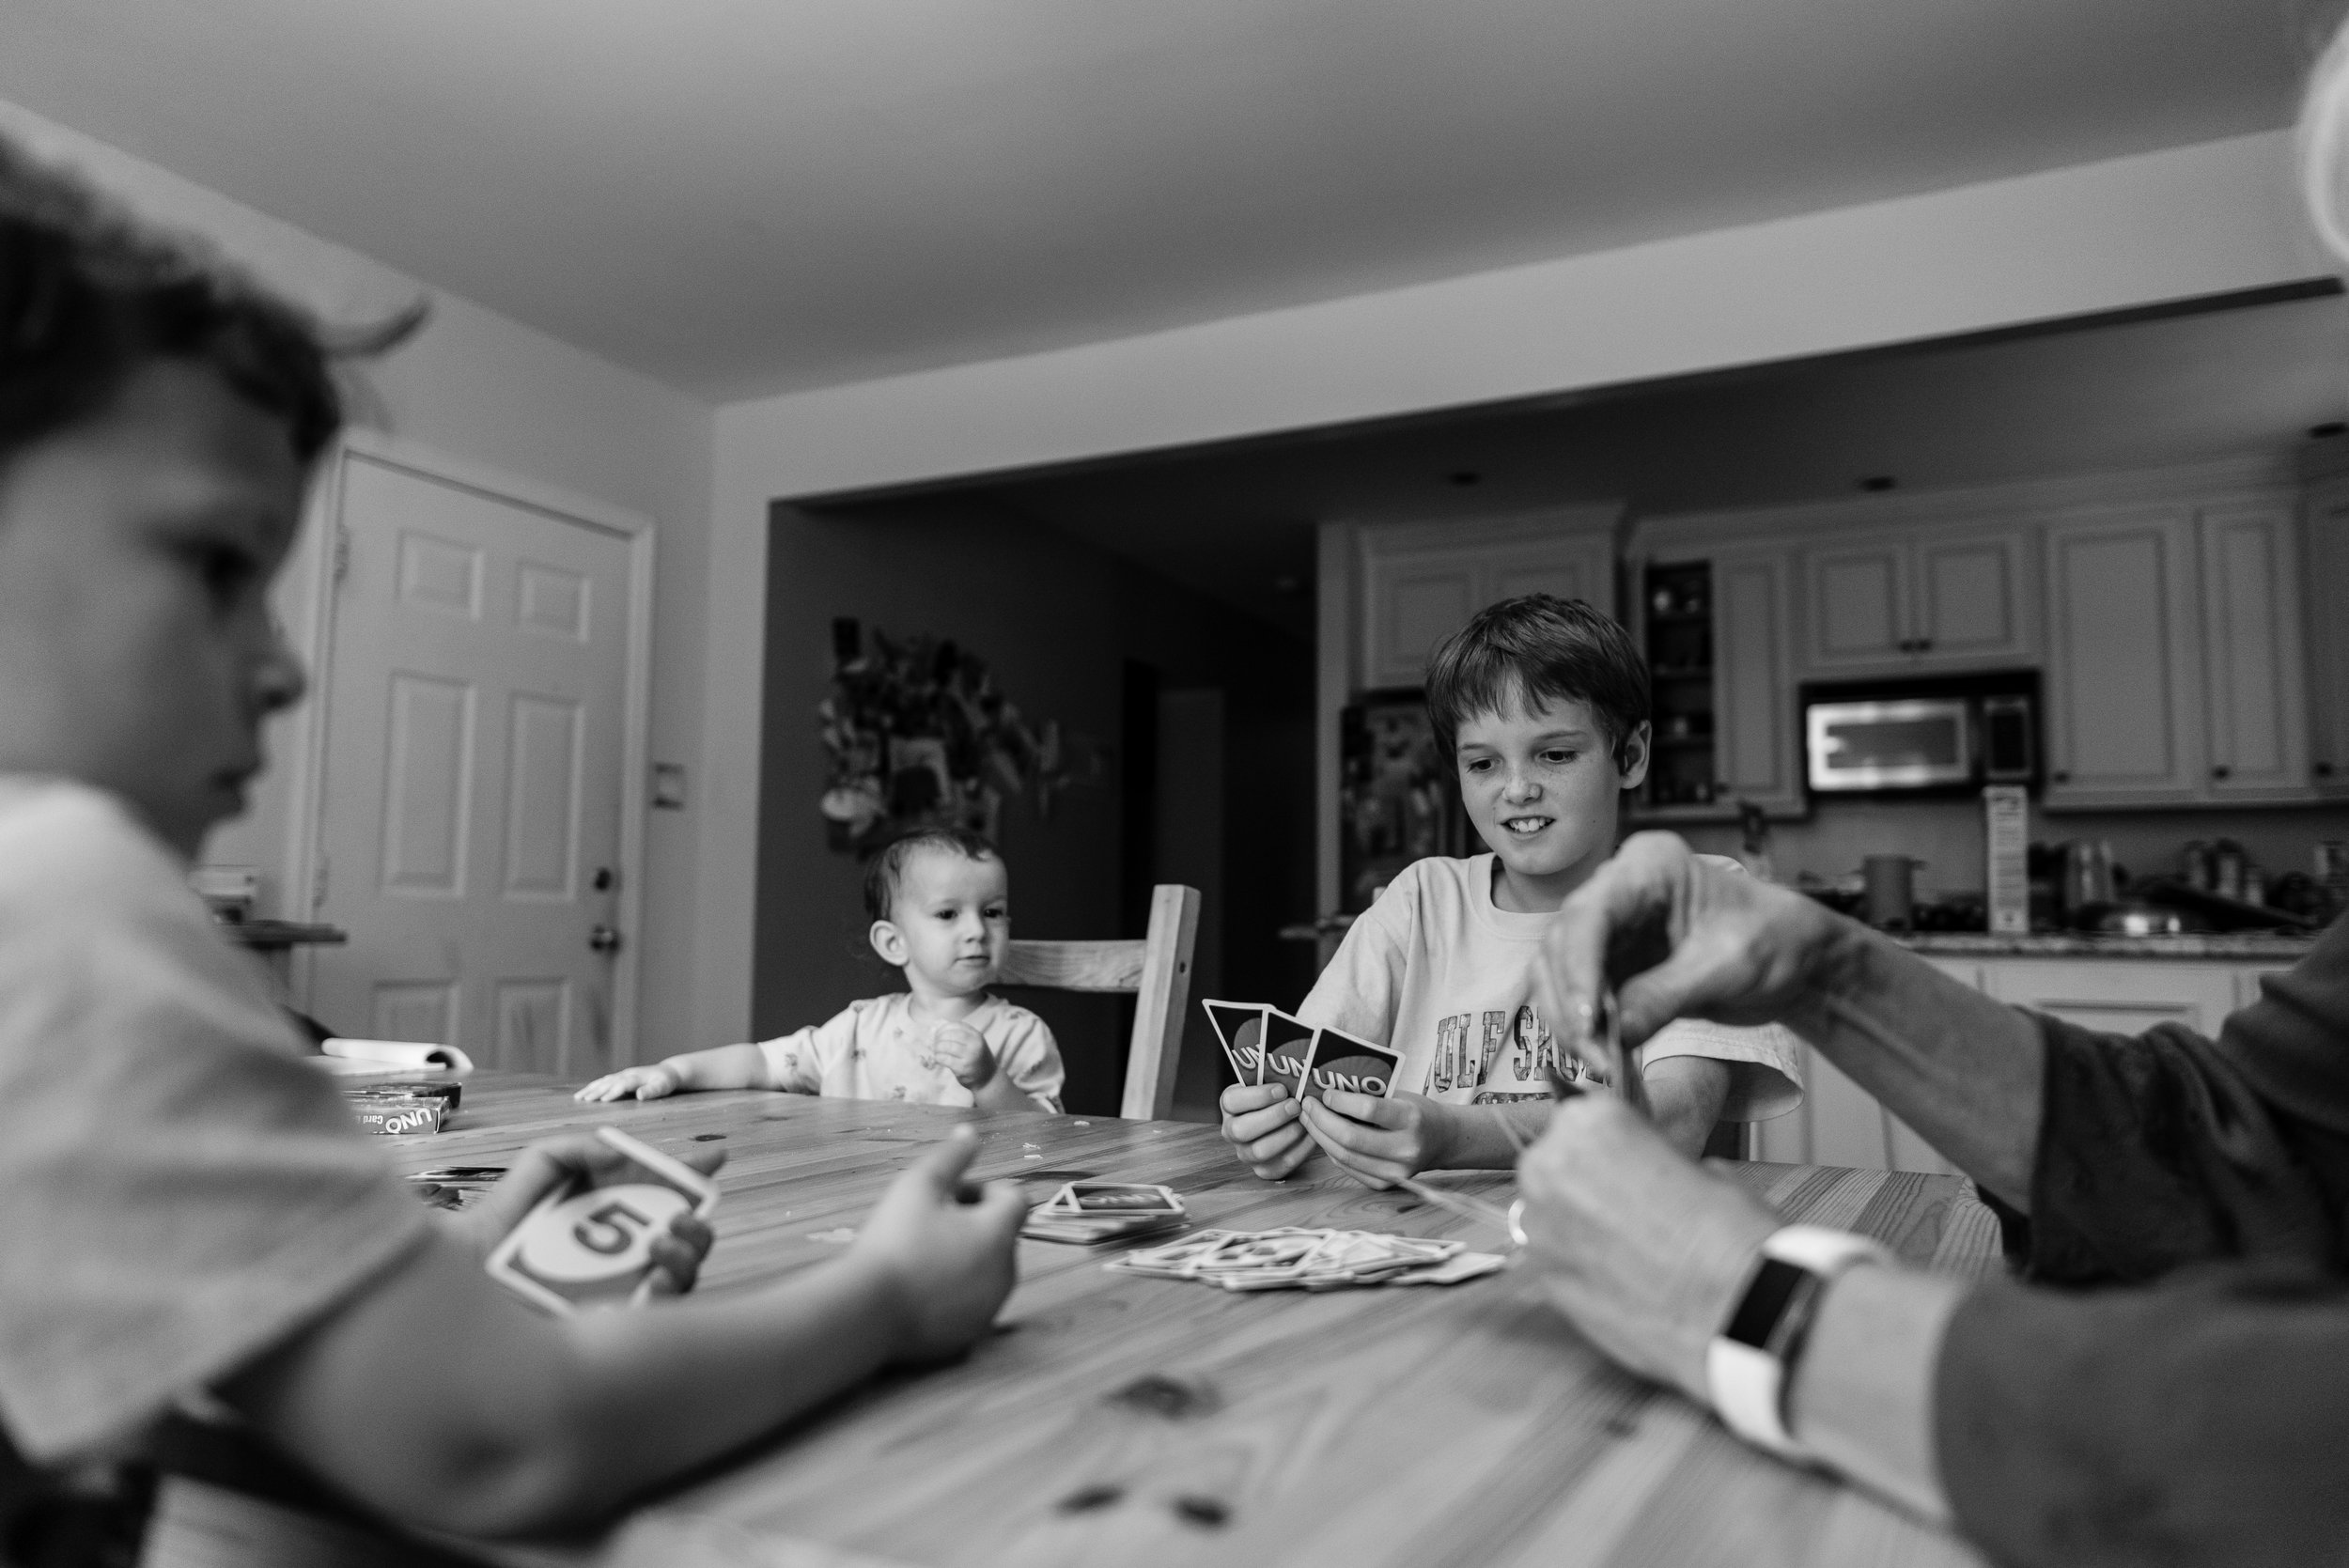 Family playing cards together at kitchen table by Northern Virginia Family Photographer Nicole Sanchez